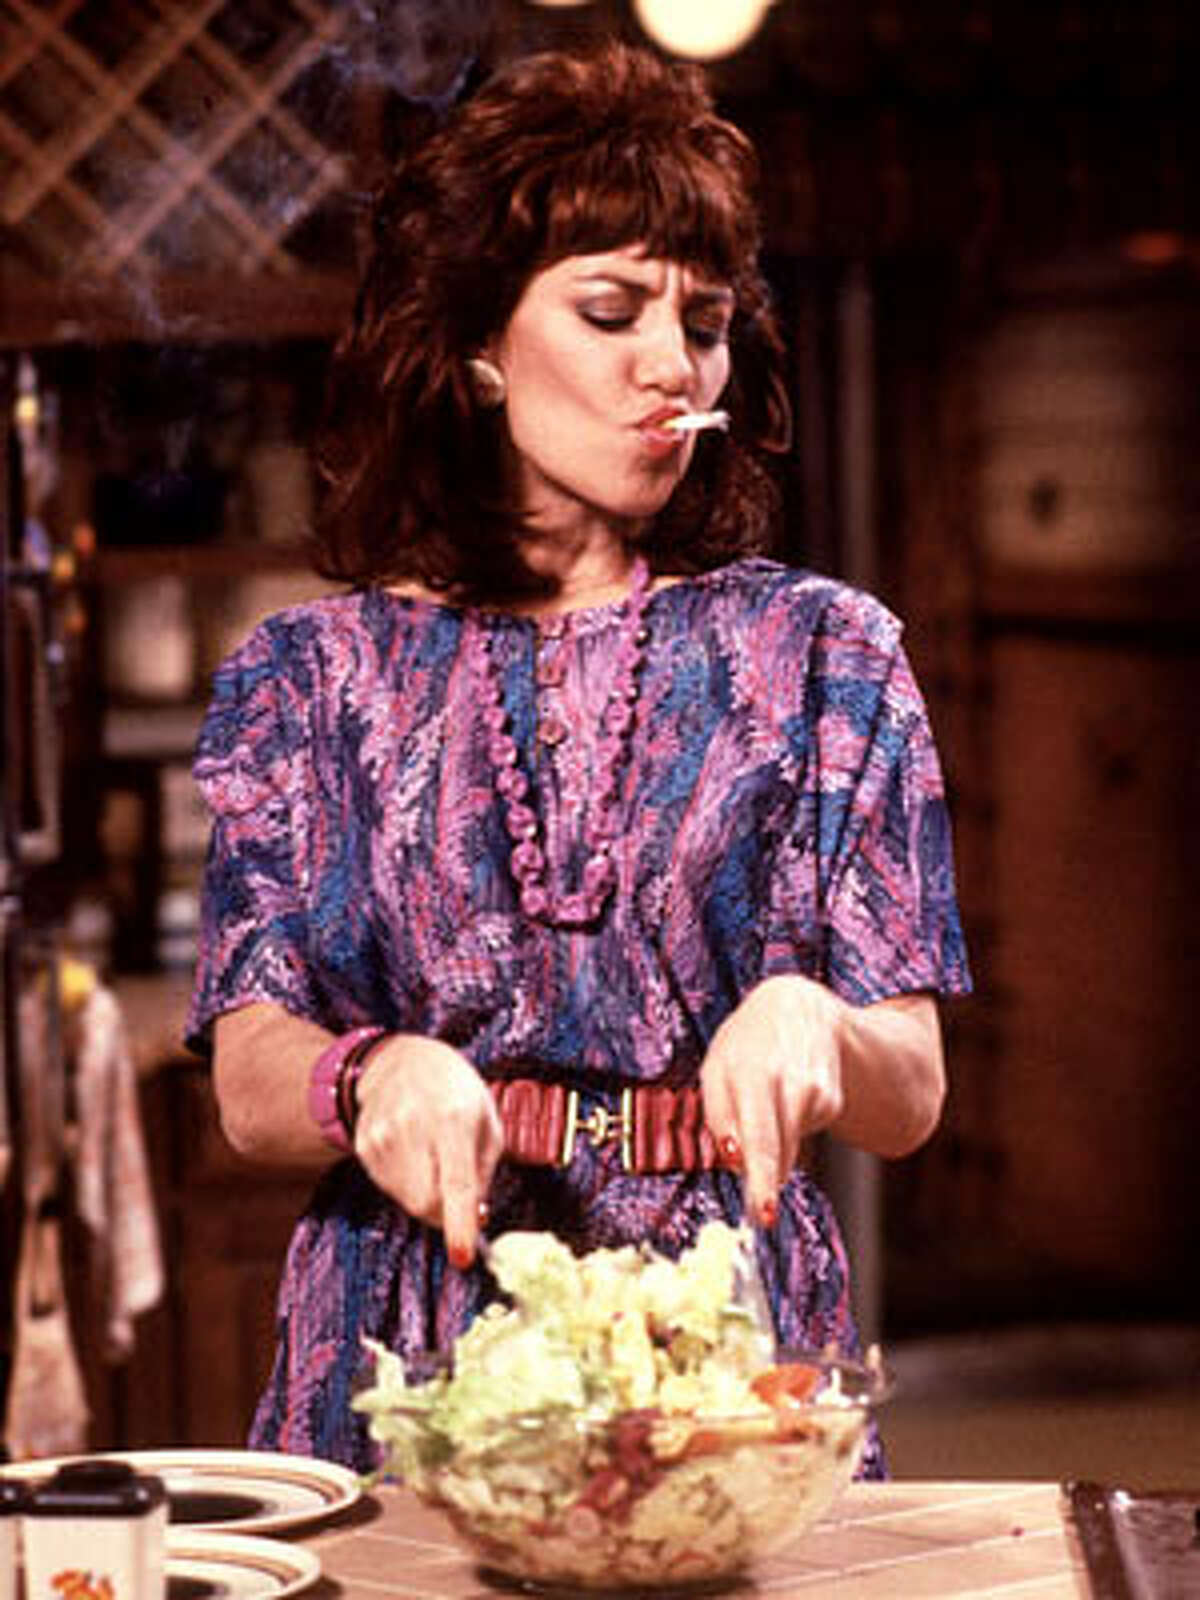 Katey Sagal - Peggy Bundy on 'Married With Children' Why didn't CPS take Peg Bundy's kids away?